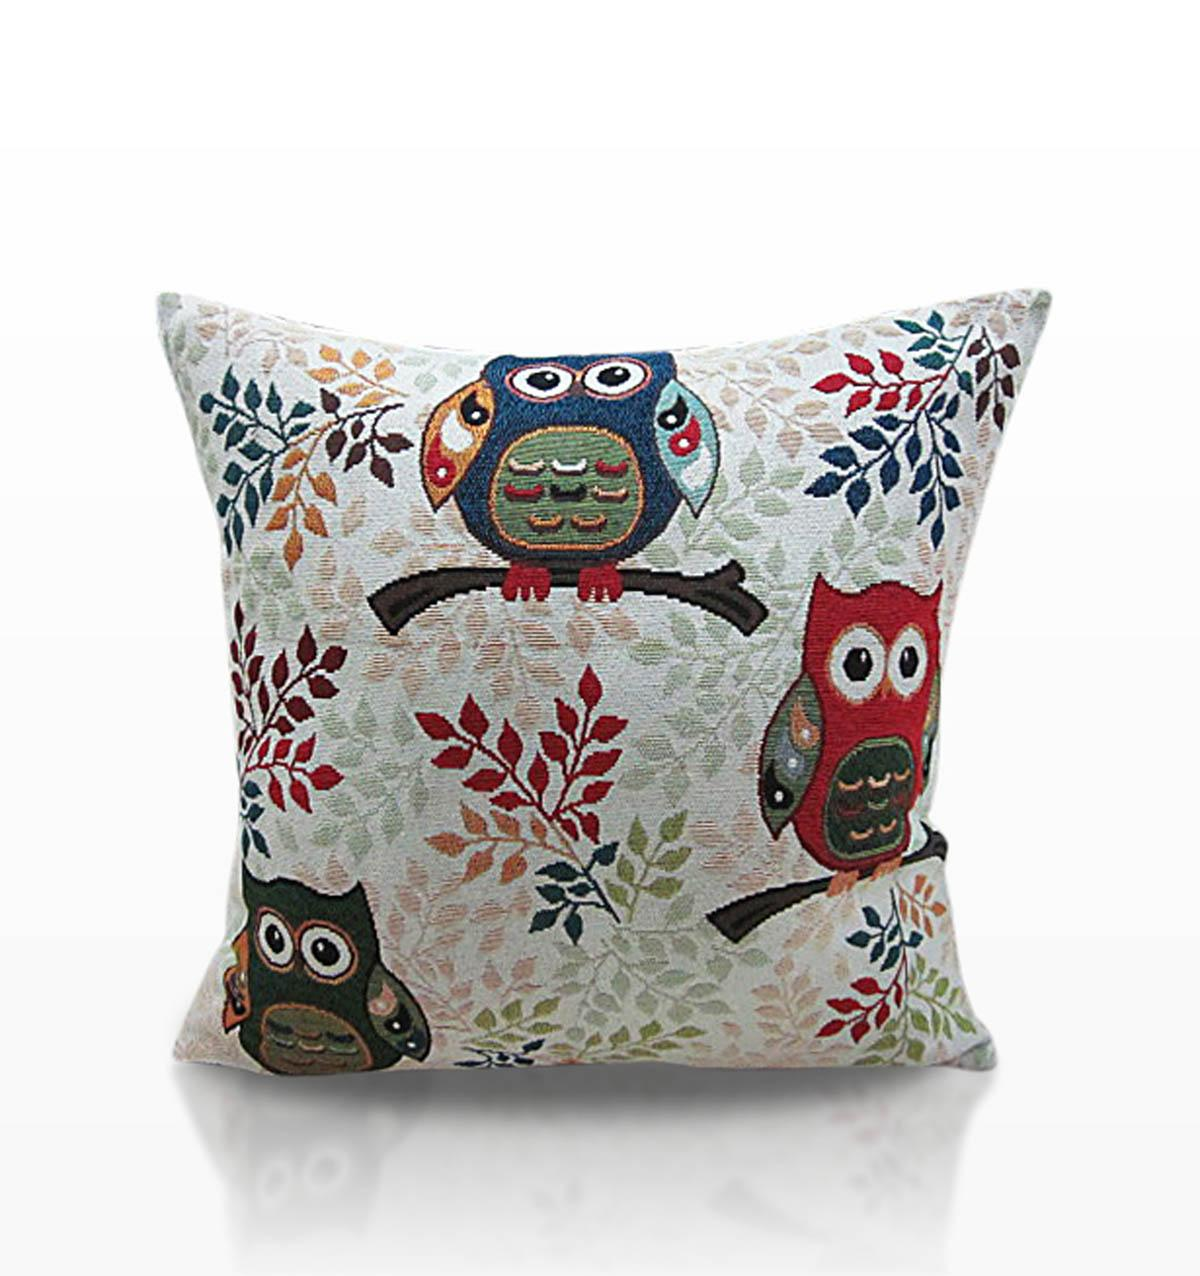 Alan Symonds Cushions And Throws Toowit Cushion Filled Multi Picture